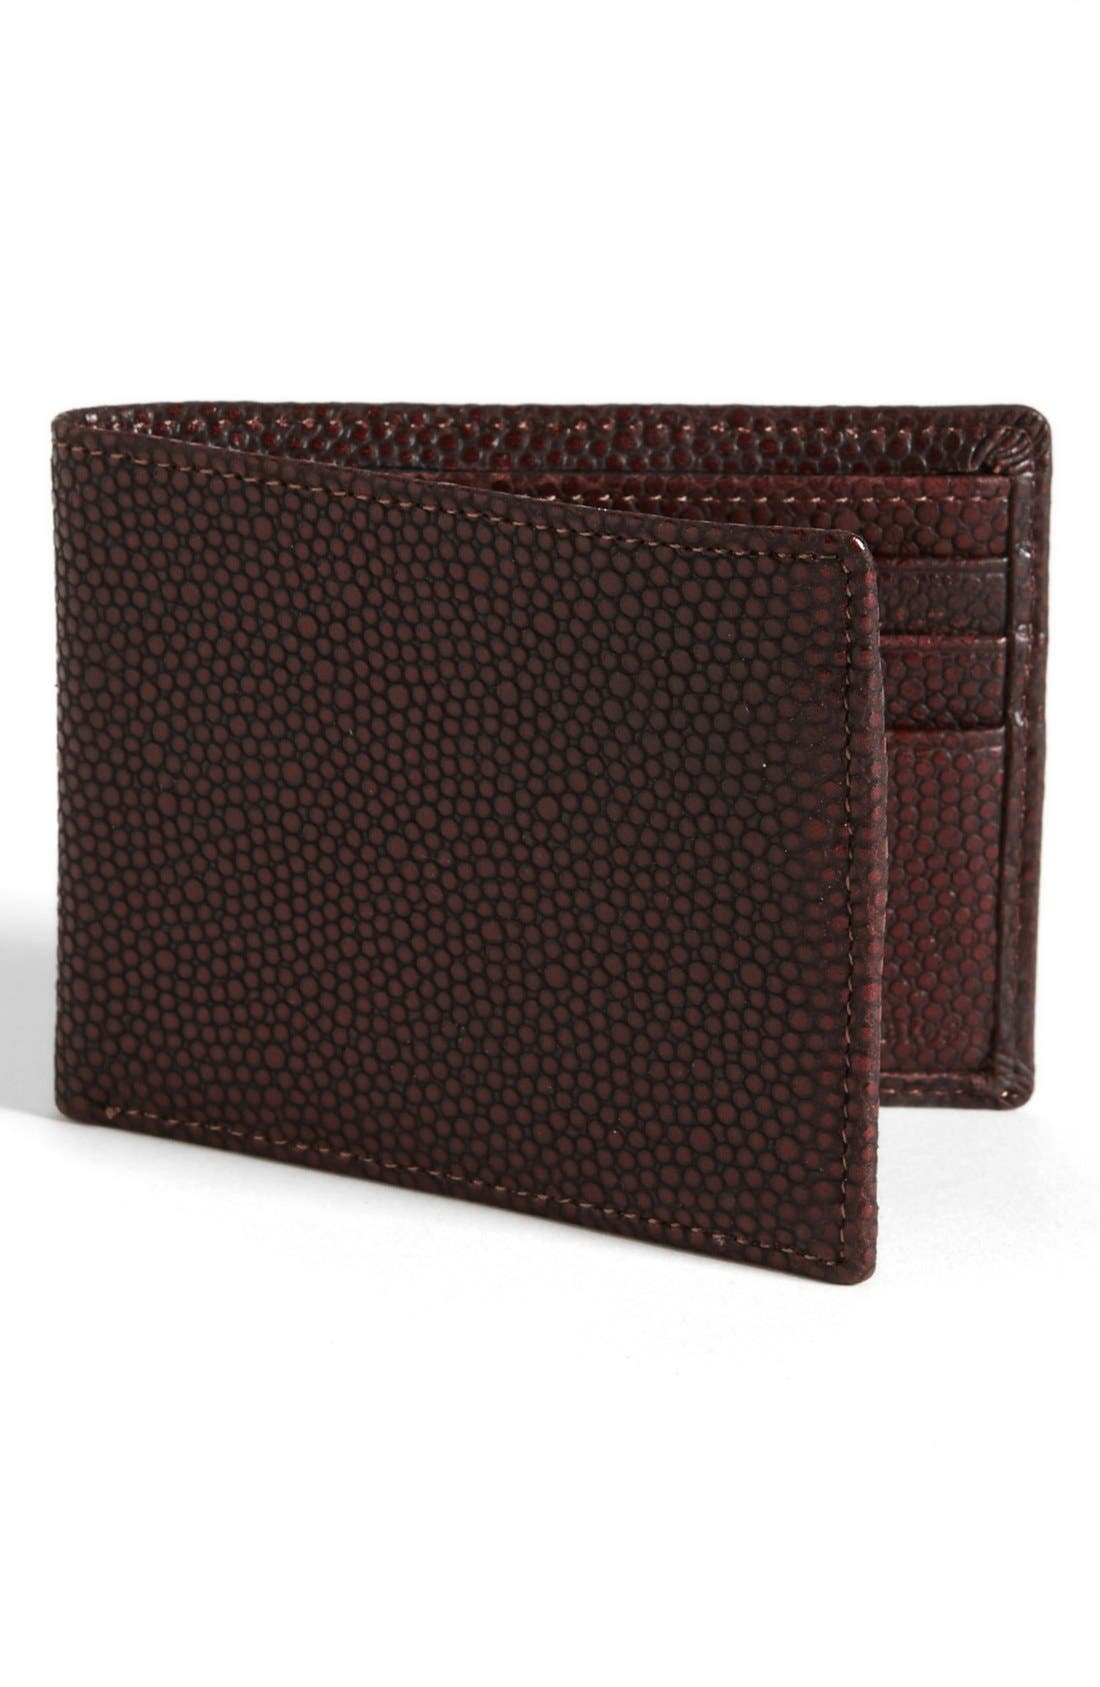 Main Image - John Varvatos Collection Pebbled Leather Wallet